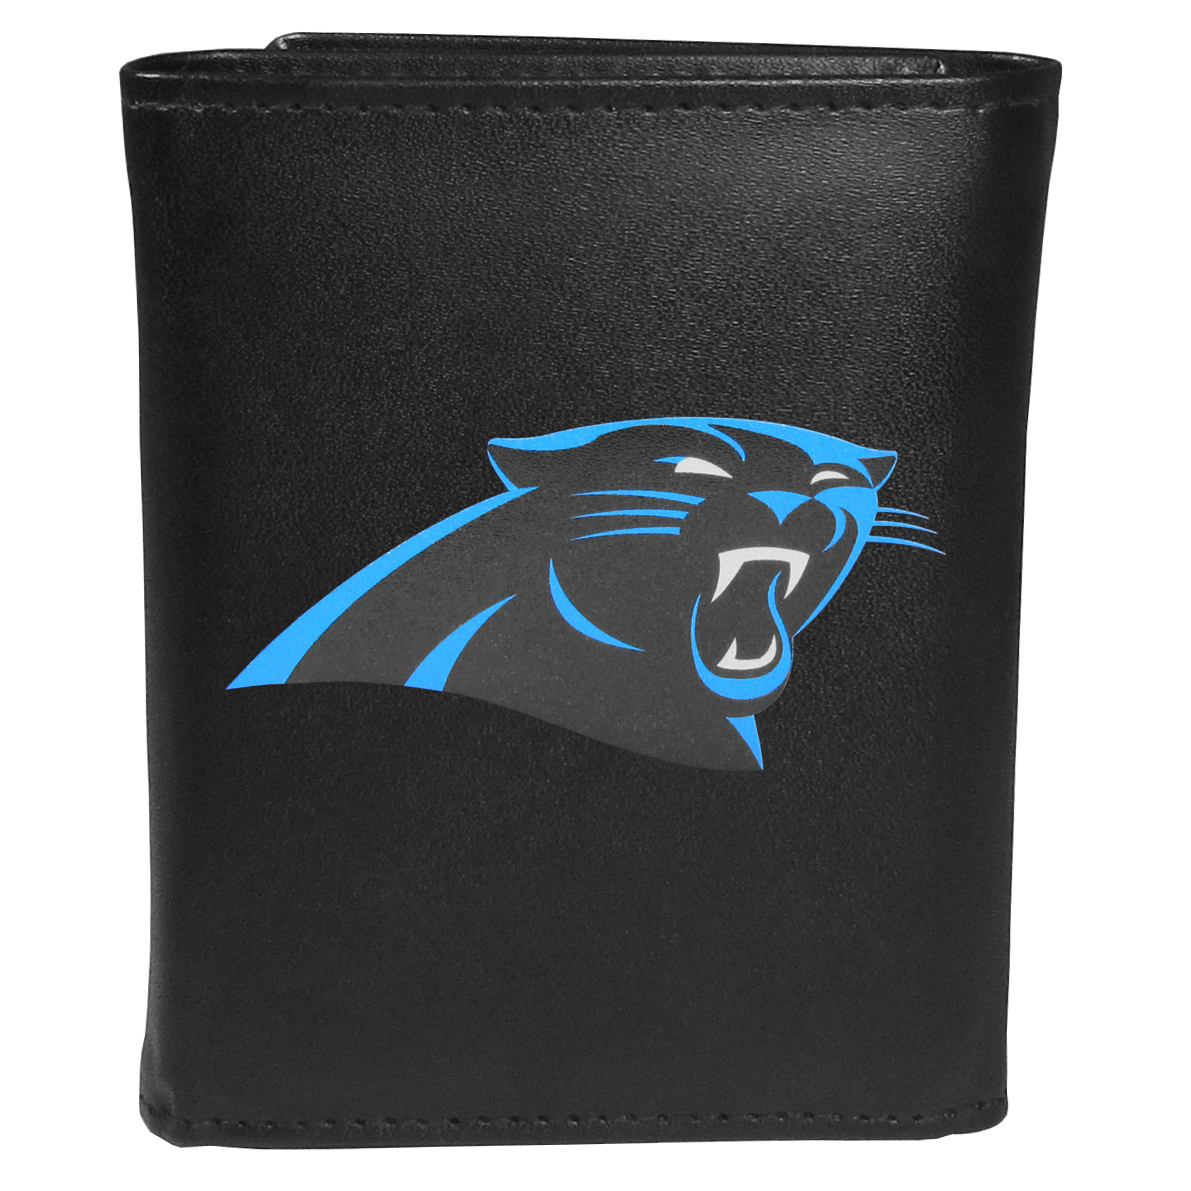 Carolina Panthers Tri-fold Wallet Large Logo - Sports fans do not have to sacrifice style with this classic tri-fold wallet that sports theCarolina Panthers?extra large logo. This men's fashion accessory has a leather grain look and expert craftmanship for a quality wallet at a great price. The wallet features inner credit card slots, windowed ID slot and a large billfold pocket. The front of the wallet features an extra large printed team logo.